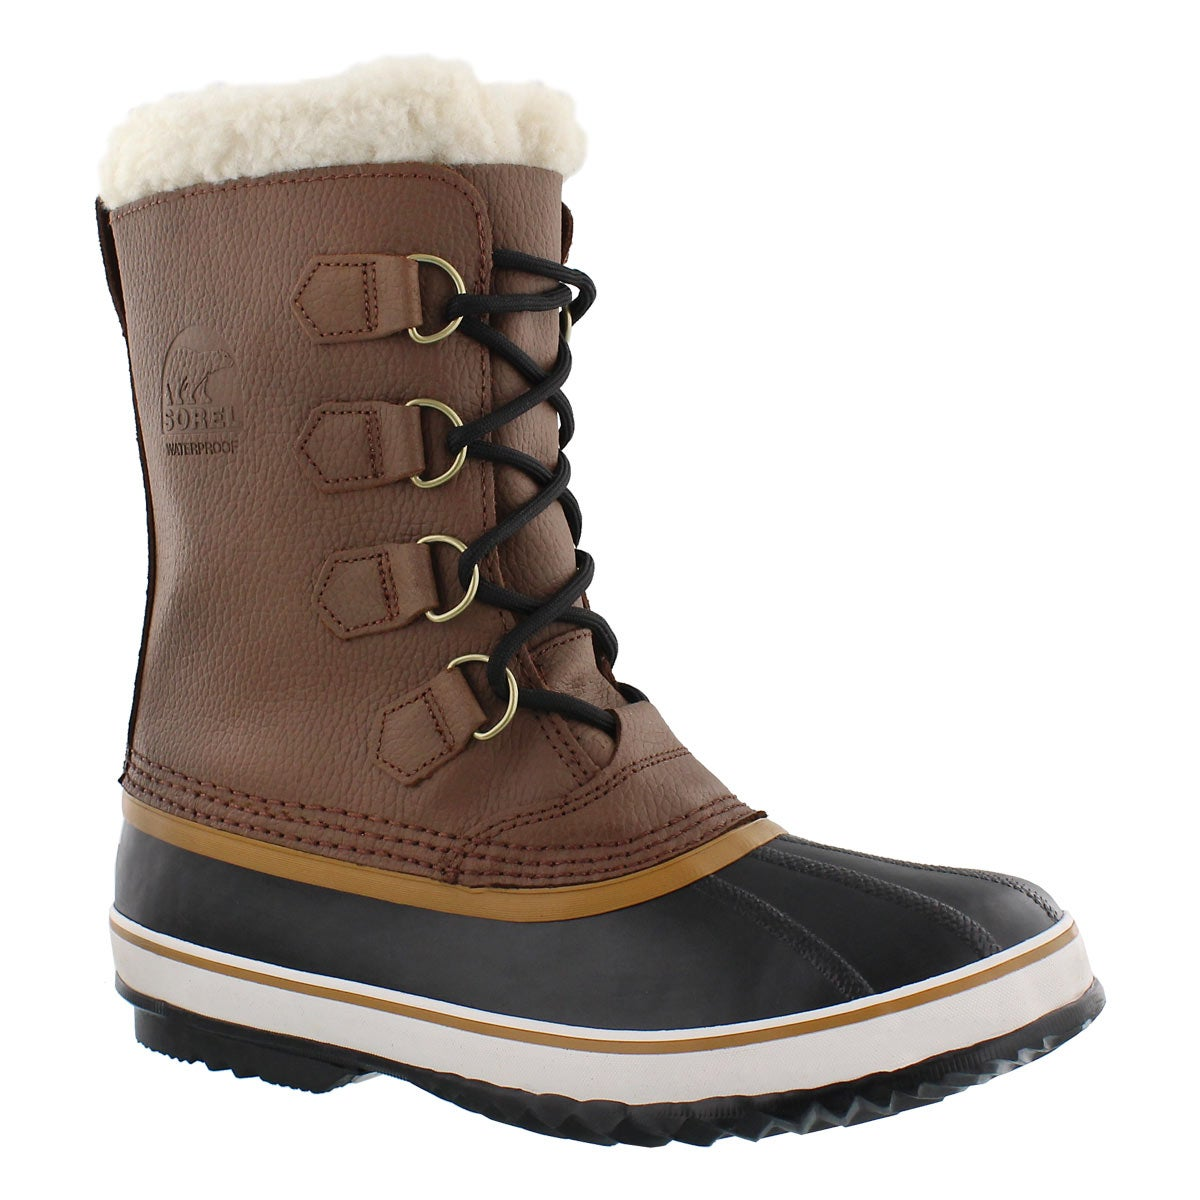 Men's 1964 PAC T hickory winter boots